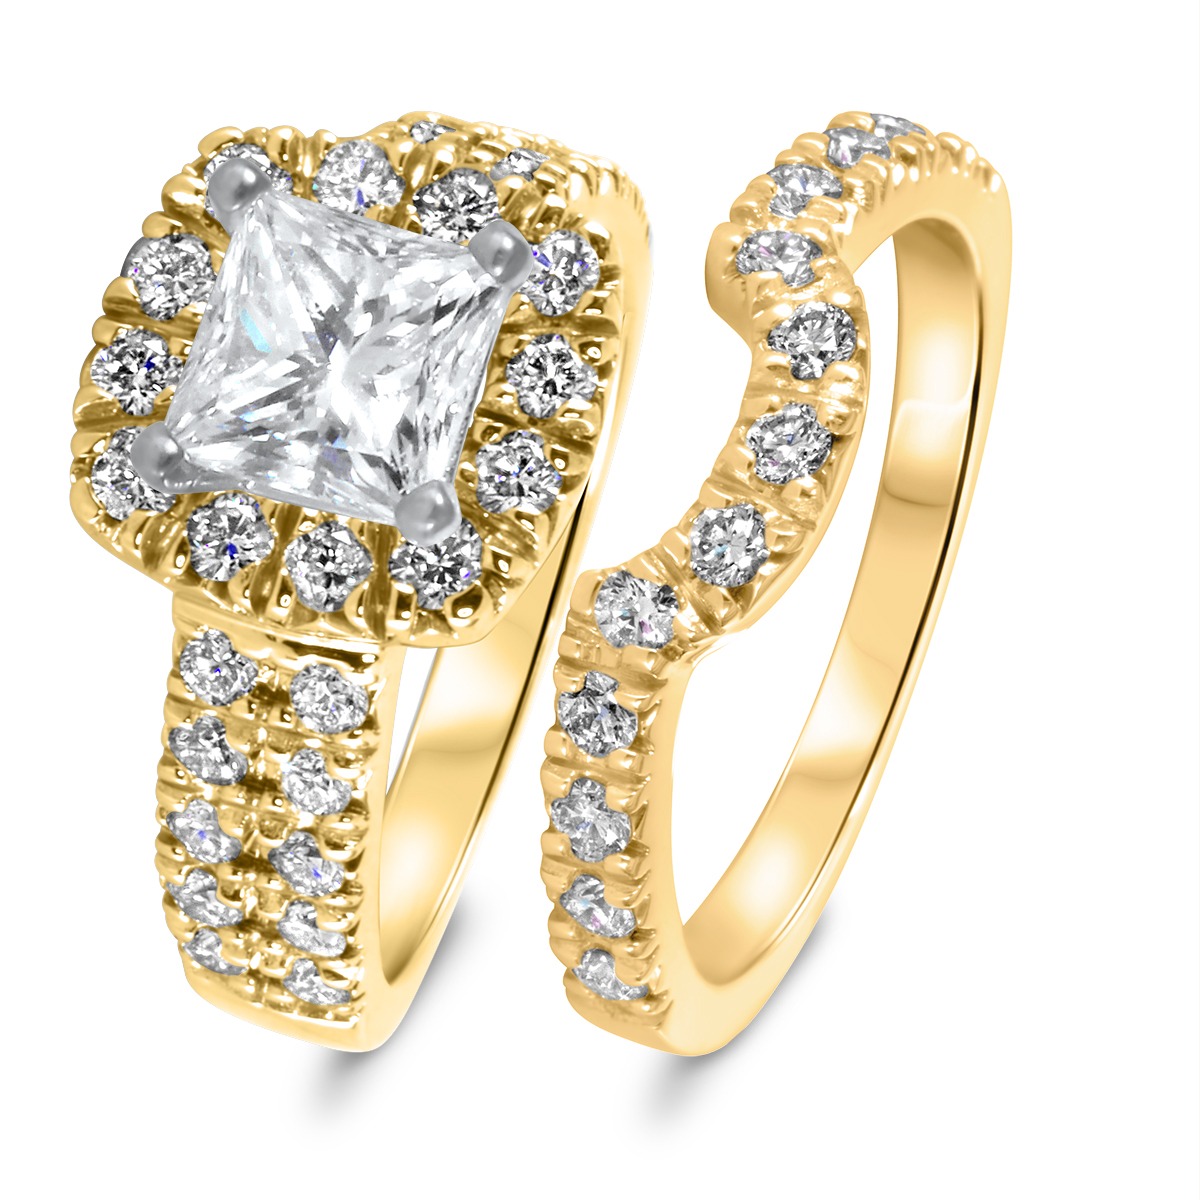 2 1/2 CT. T.W. Diamond Women's Bridal Wedding Ring Set 10K Yellow Gold